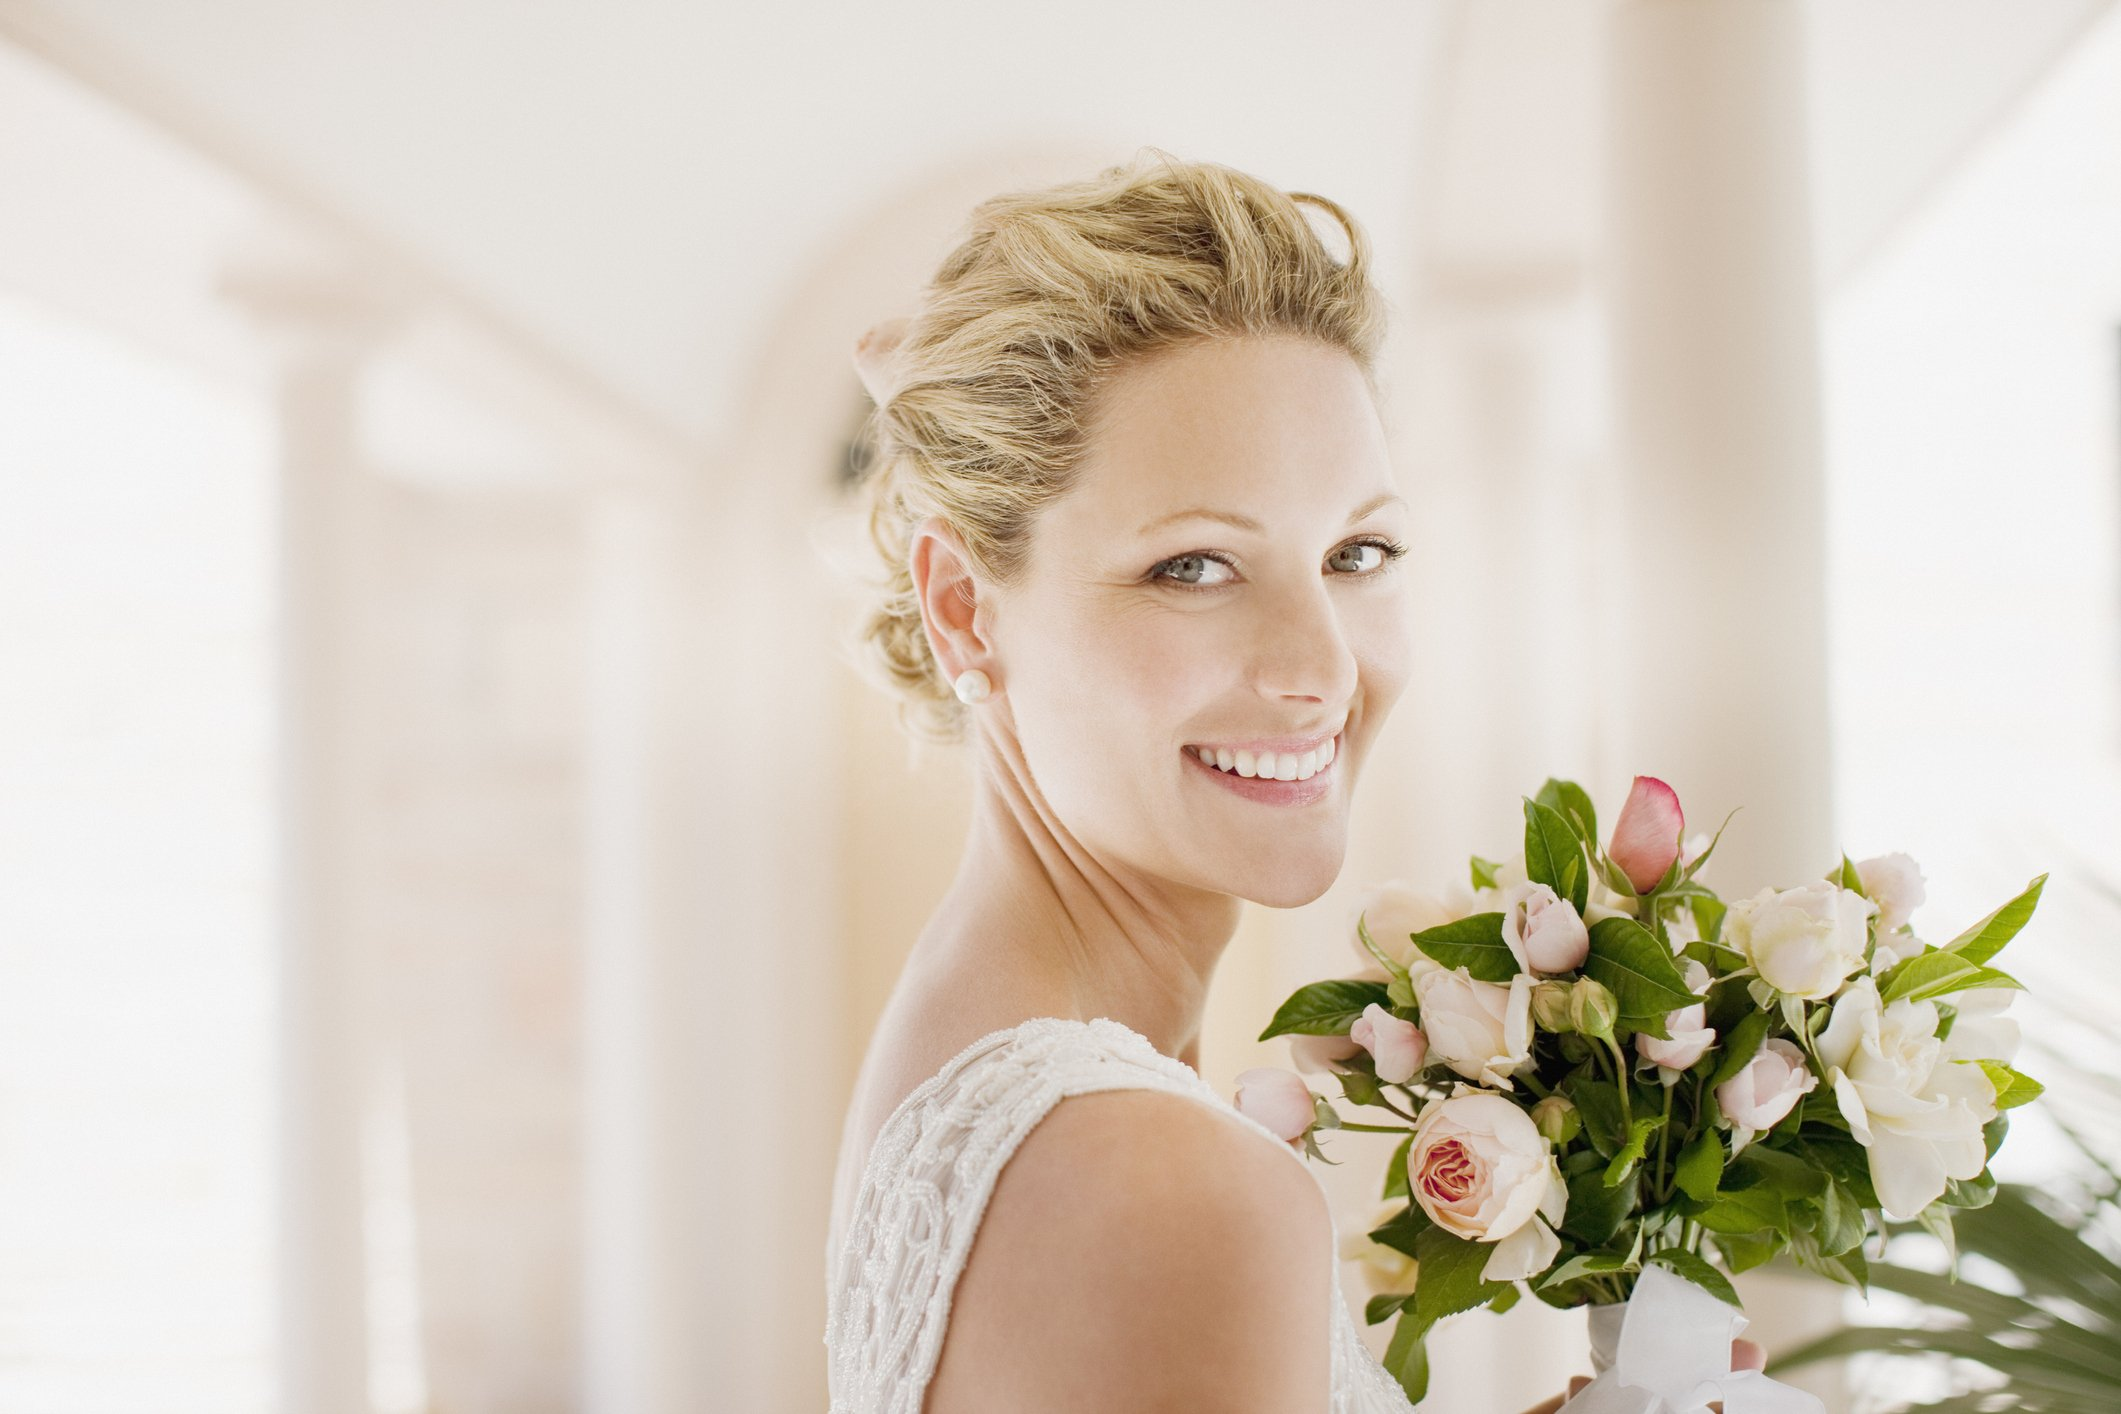 Bride smiling with a bouquet.   Photo: Getty Images